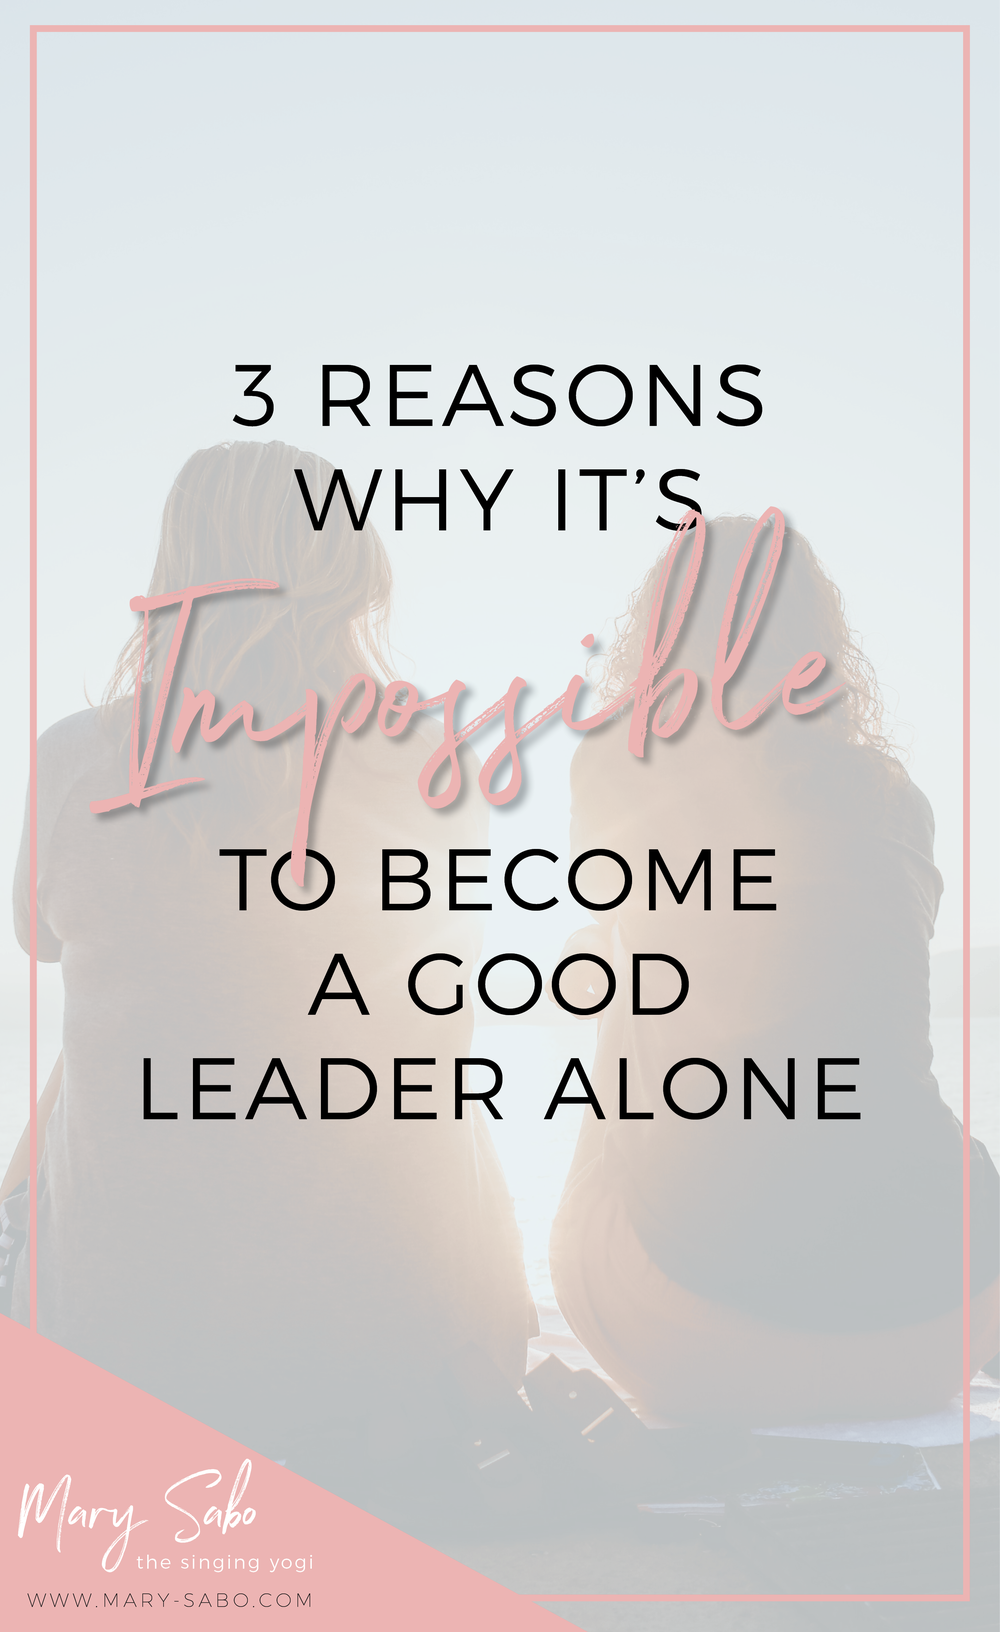 3 Reasons Why It's Impossible To Become A Good Leader Alone | Mary Sabo Yoga Instructor